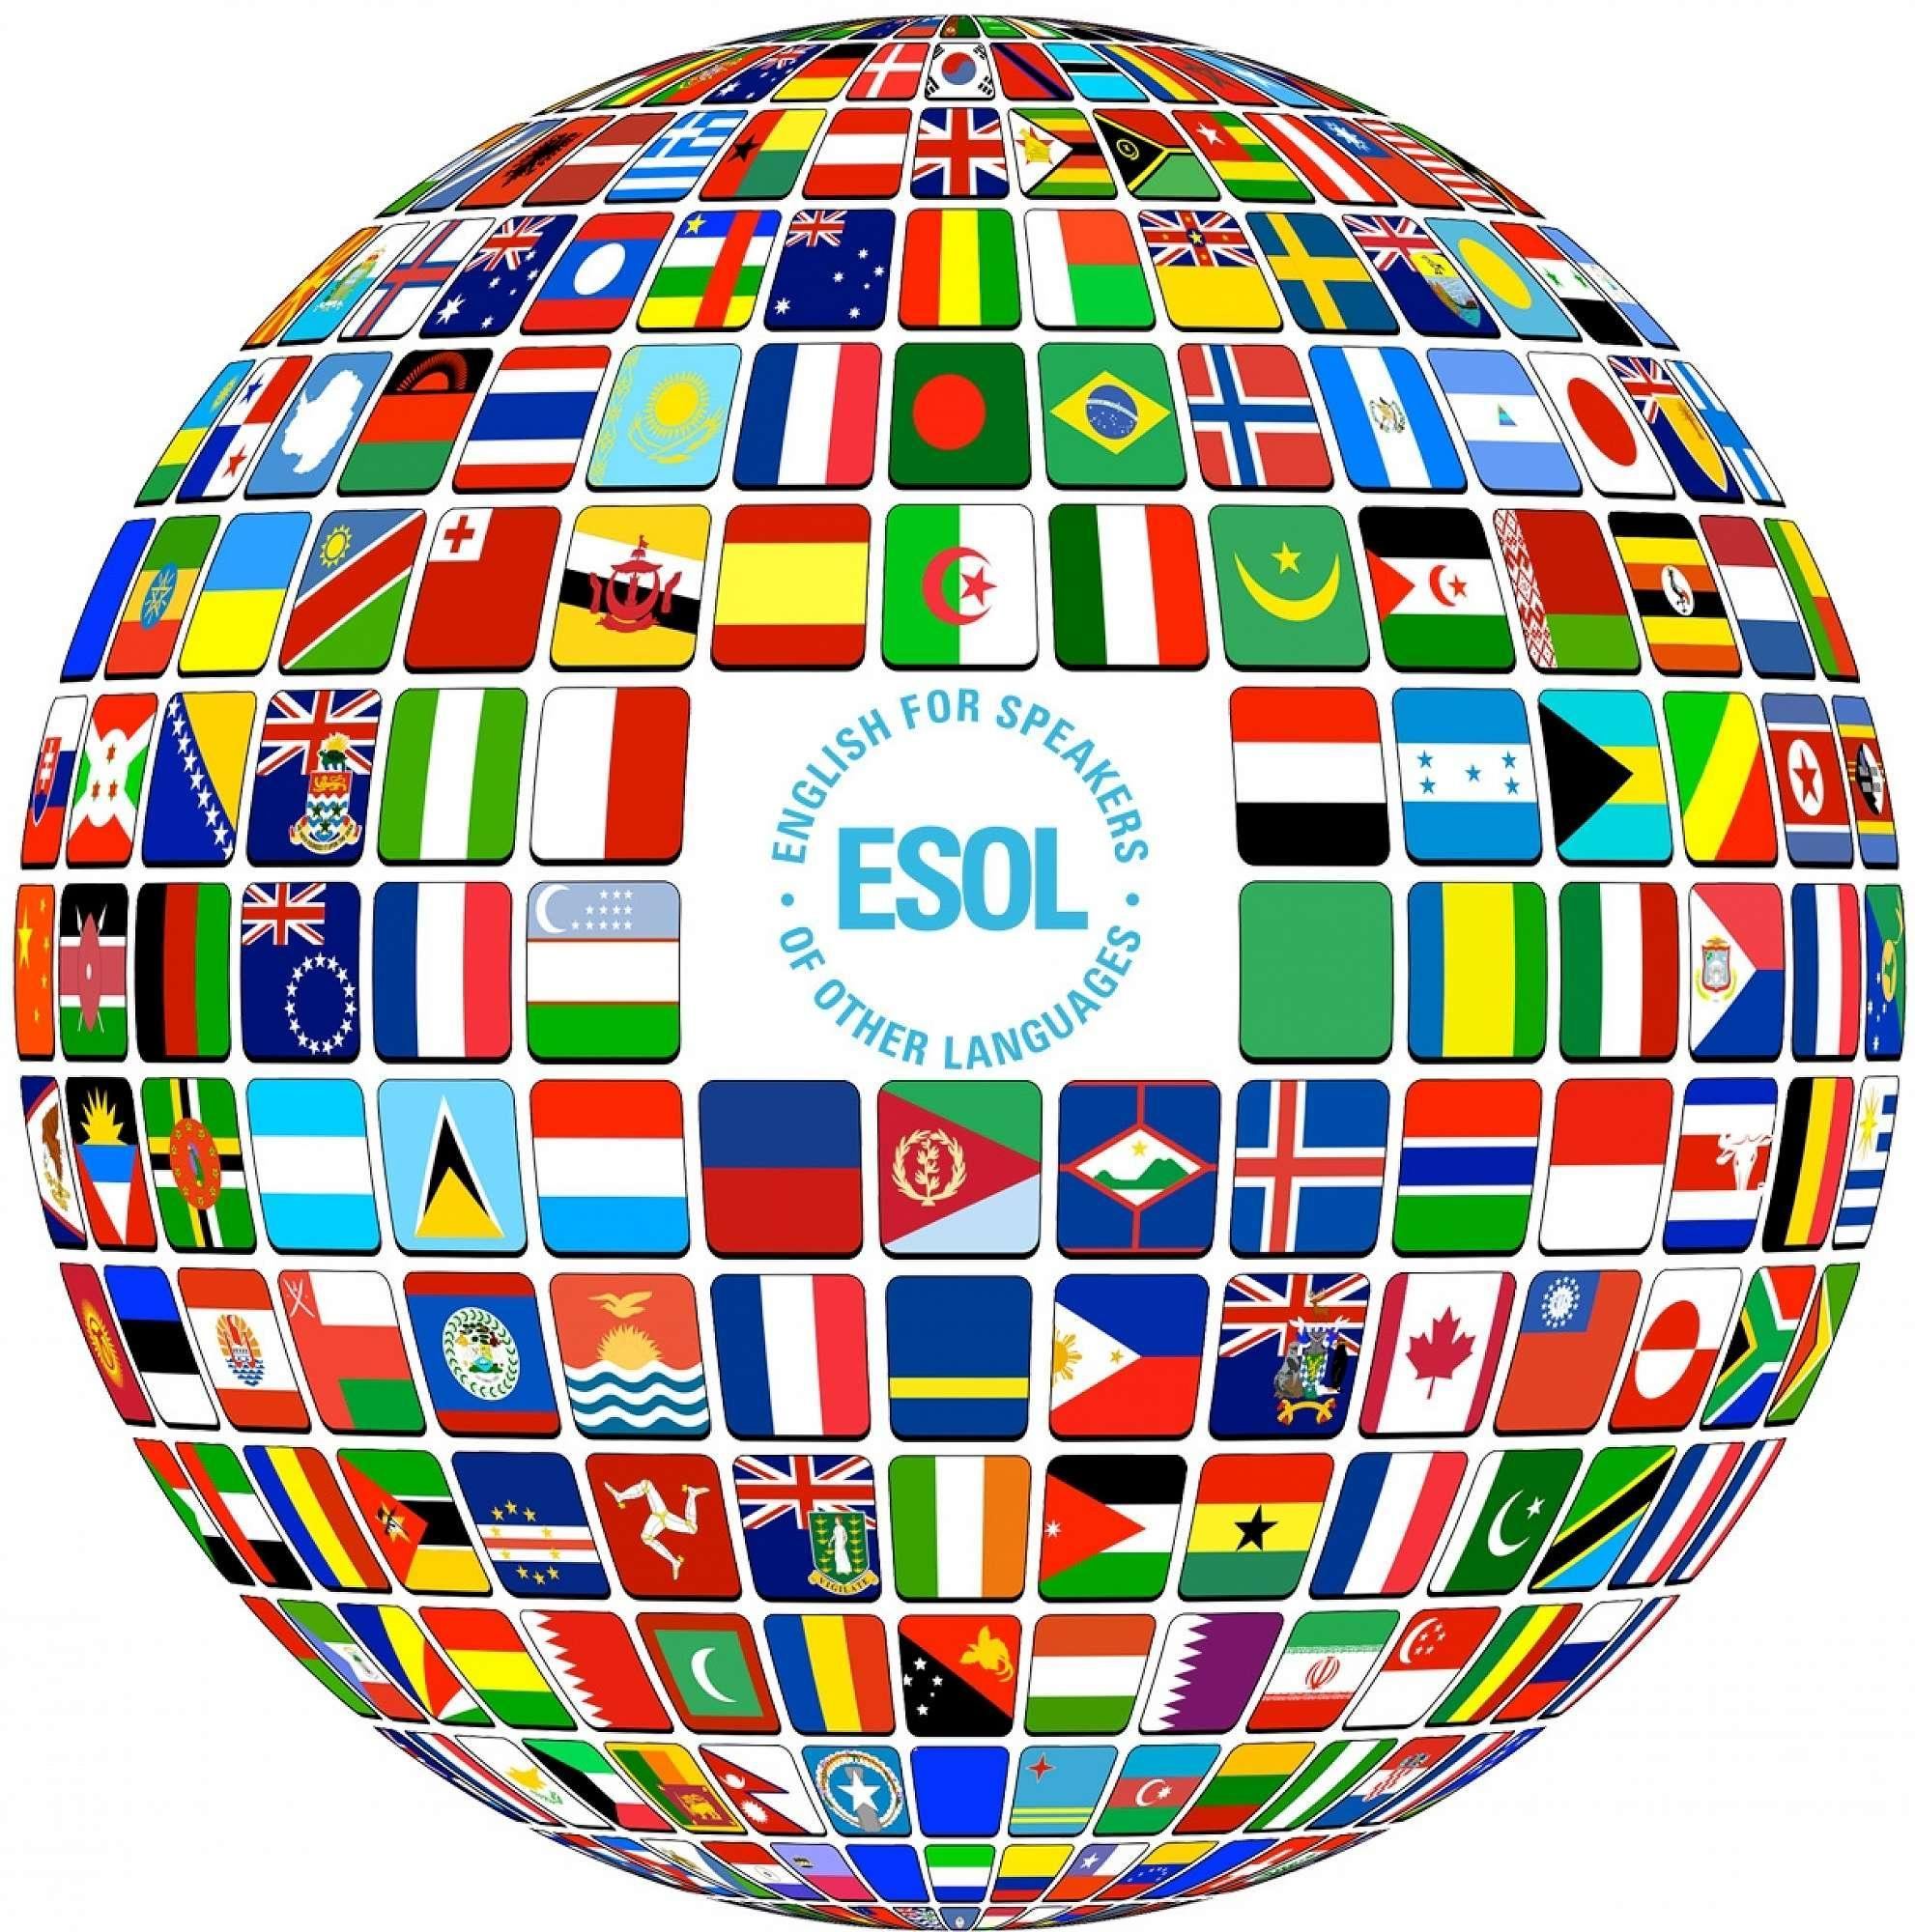 WELCOME TO ESOL CLASS!